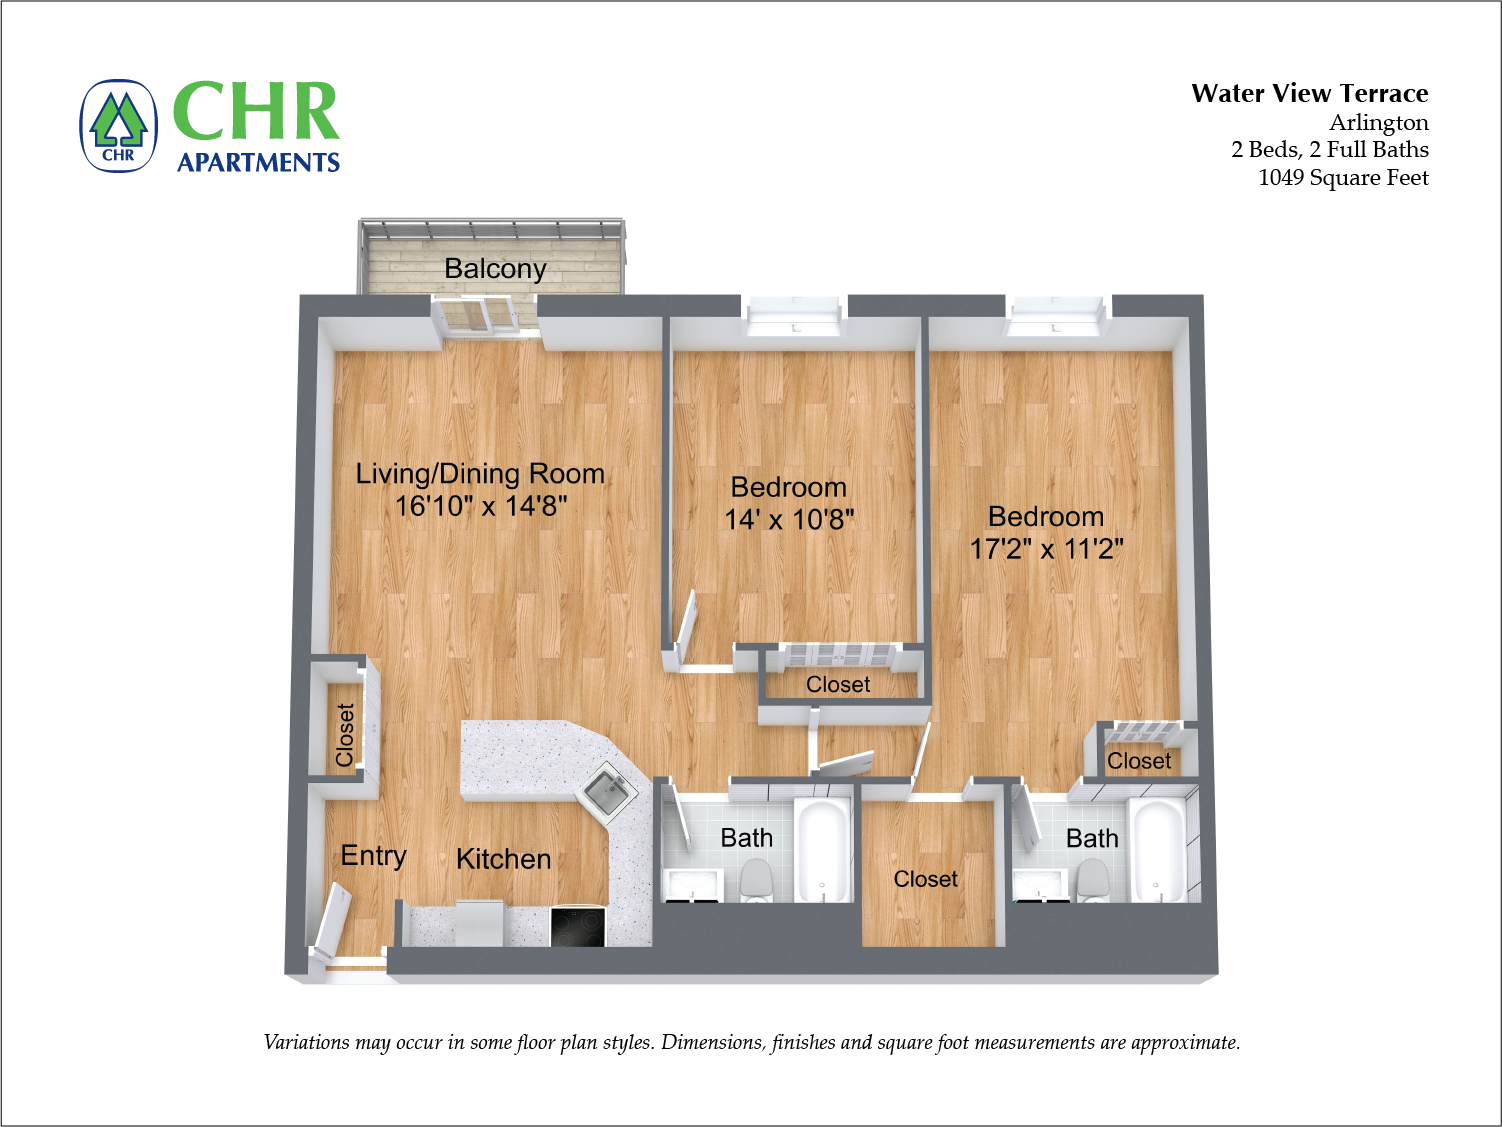 Click to view 2 BR w/ Walk-in Closet floor plan gallery